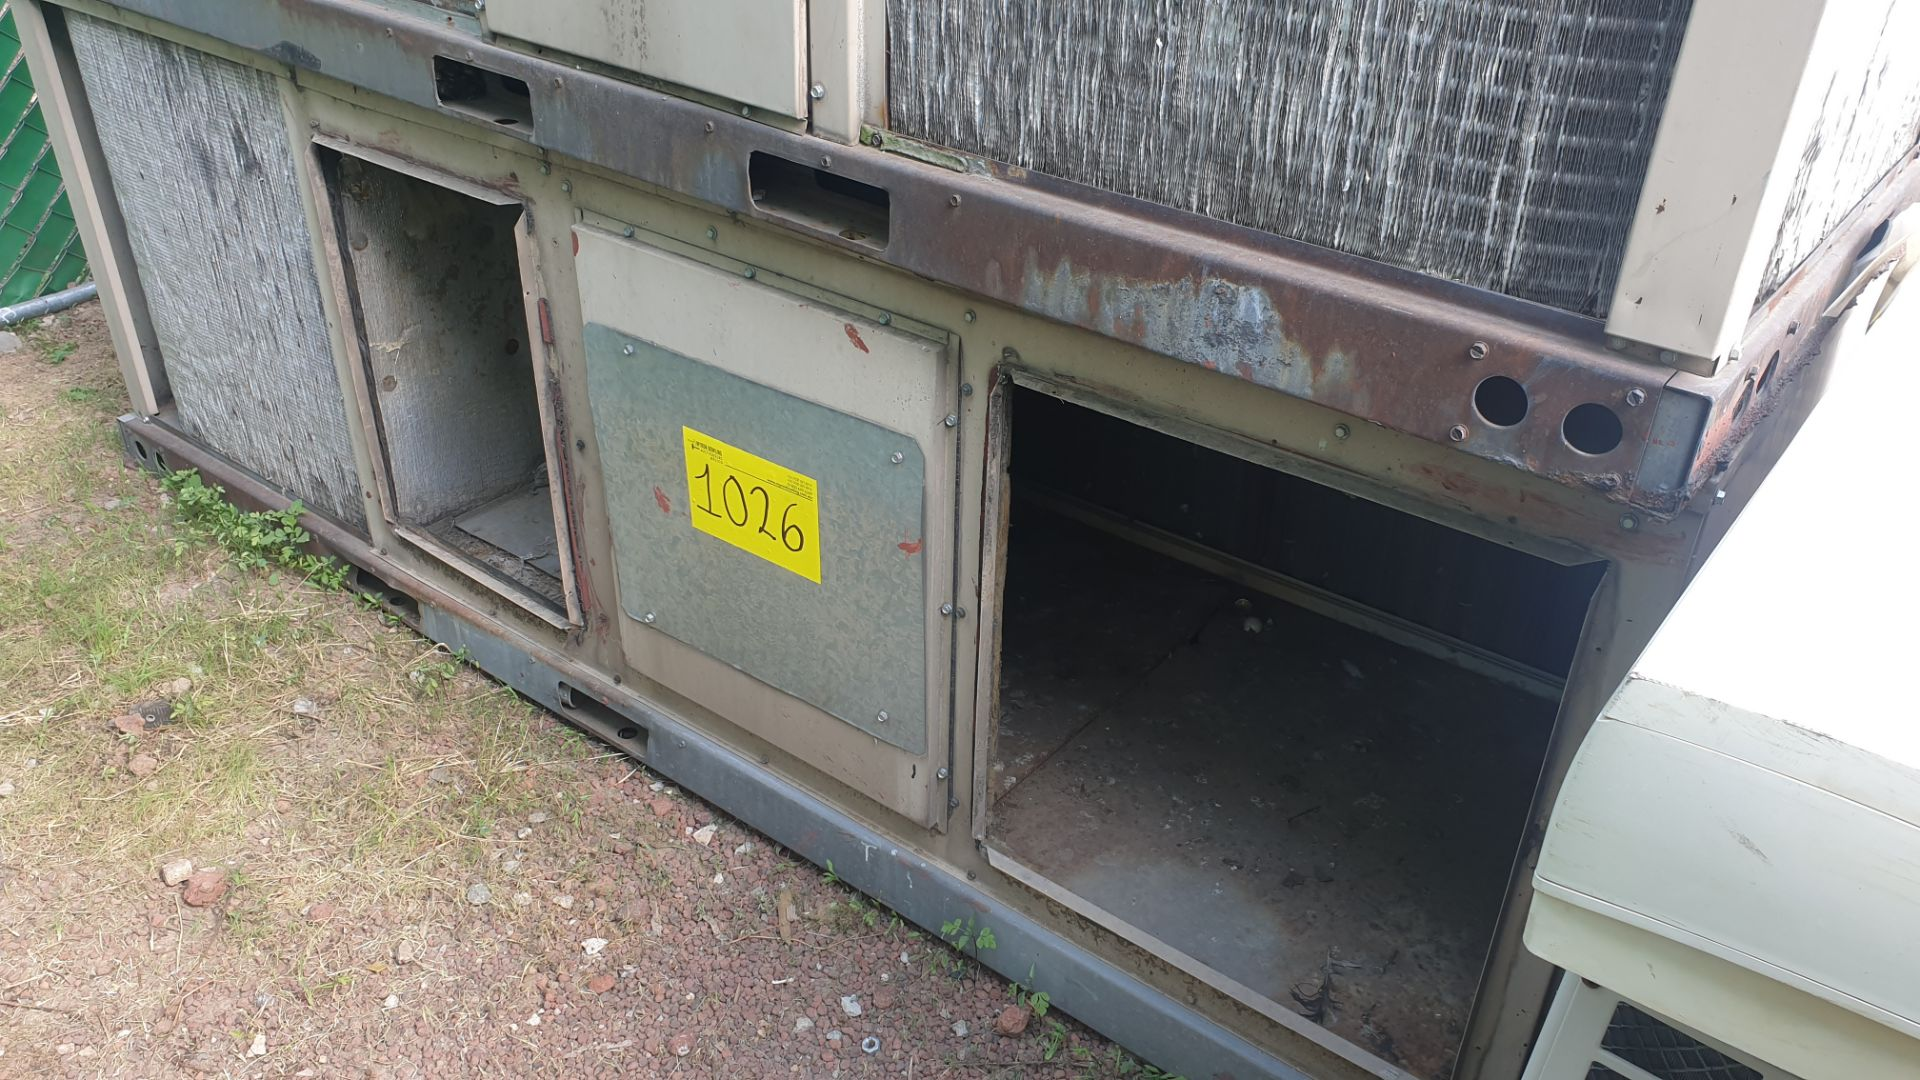 1 York Industrial Condensing unit, model D3CE090A46C n/s NFFM8698 - Image 5 of 6